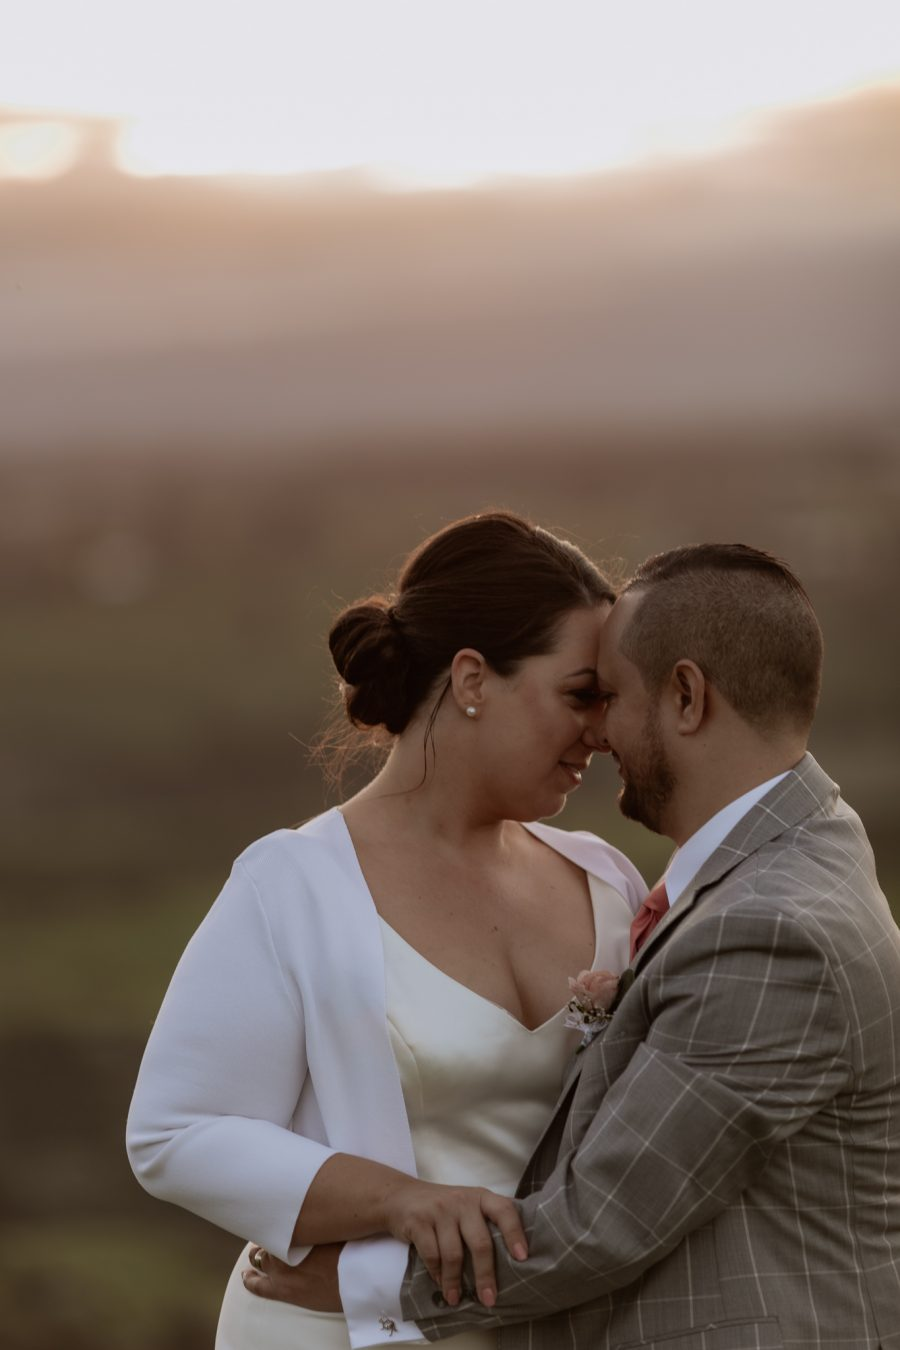 Romantic moment of bride and groom